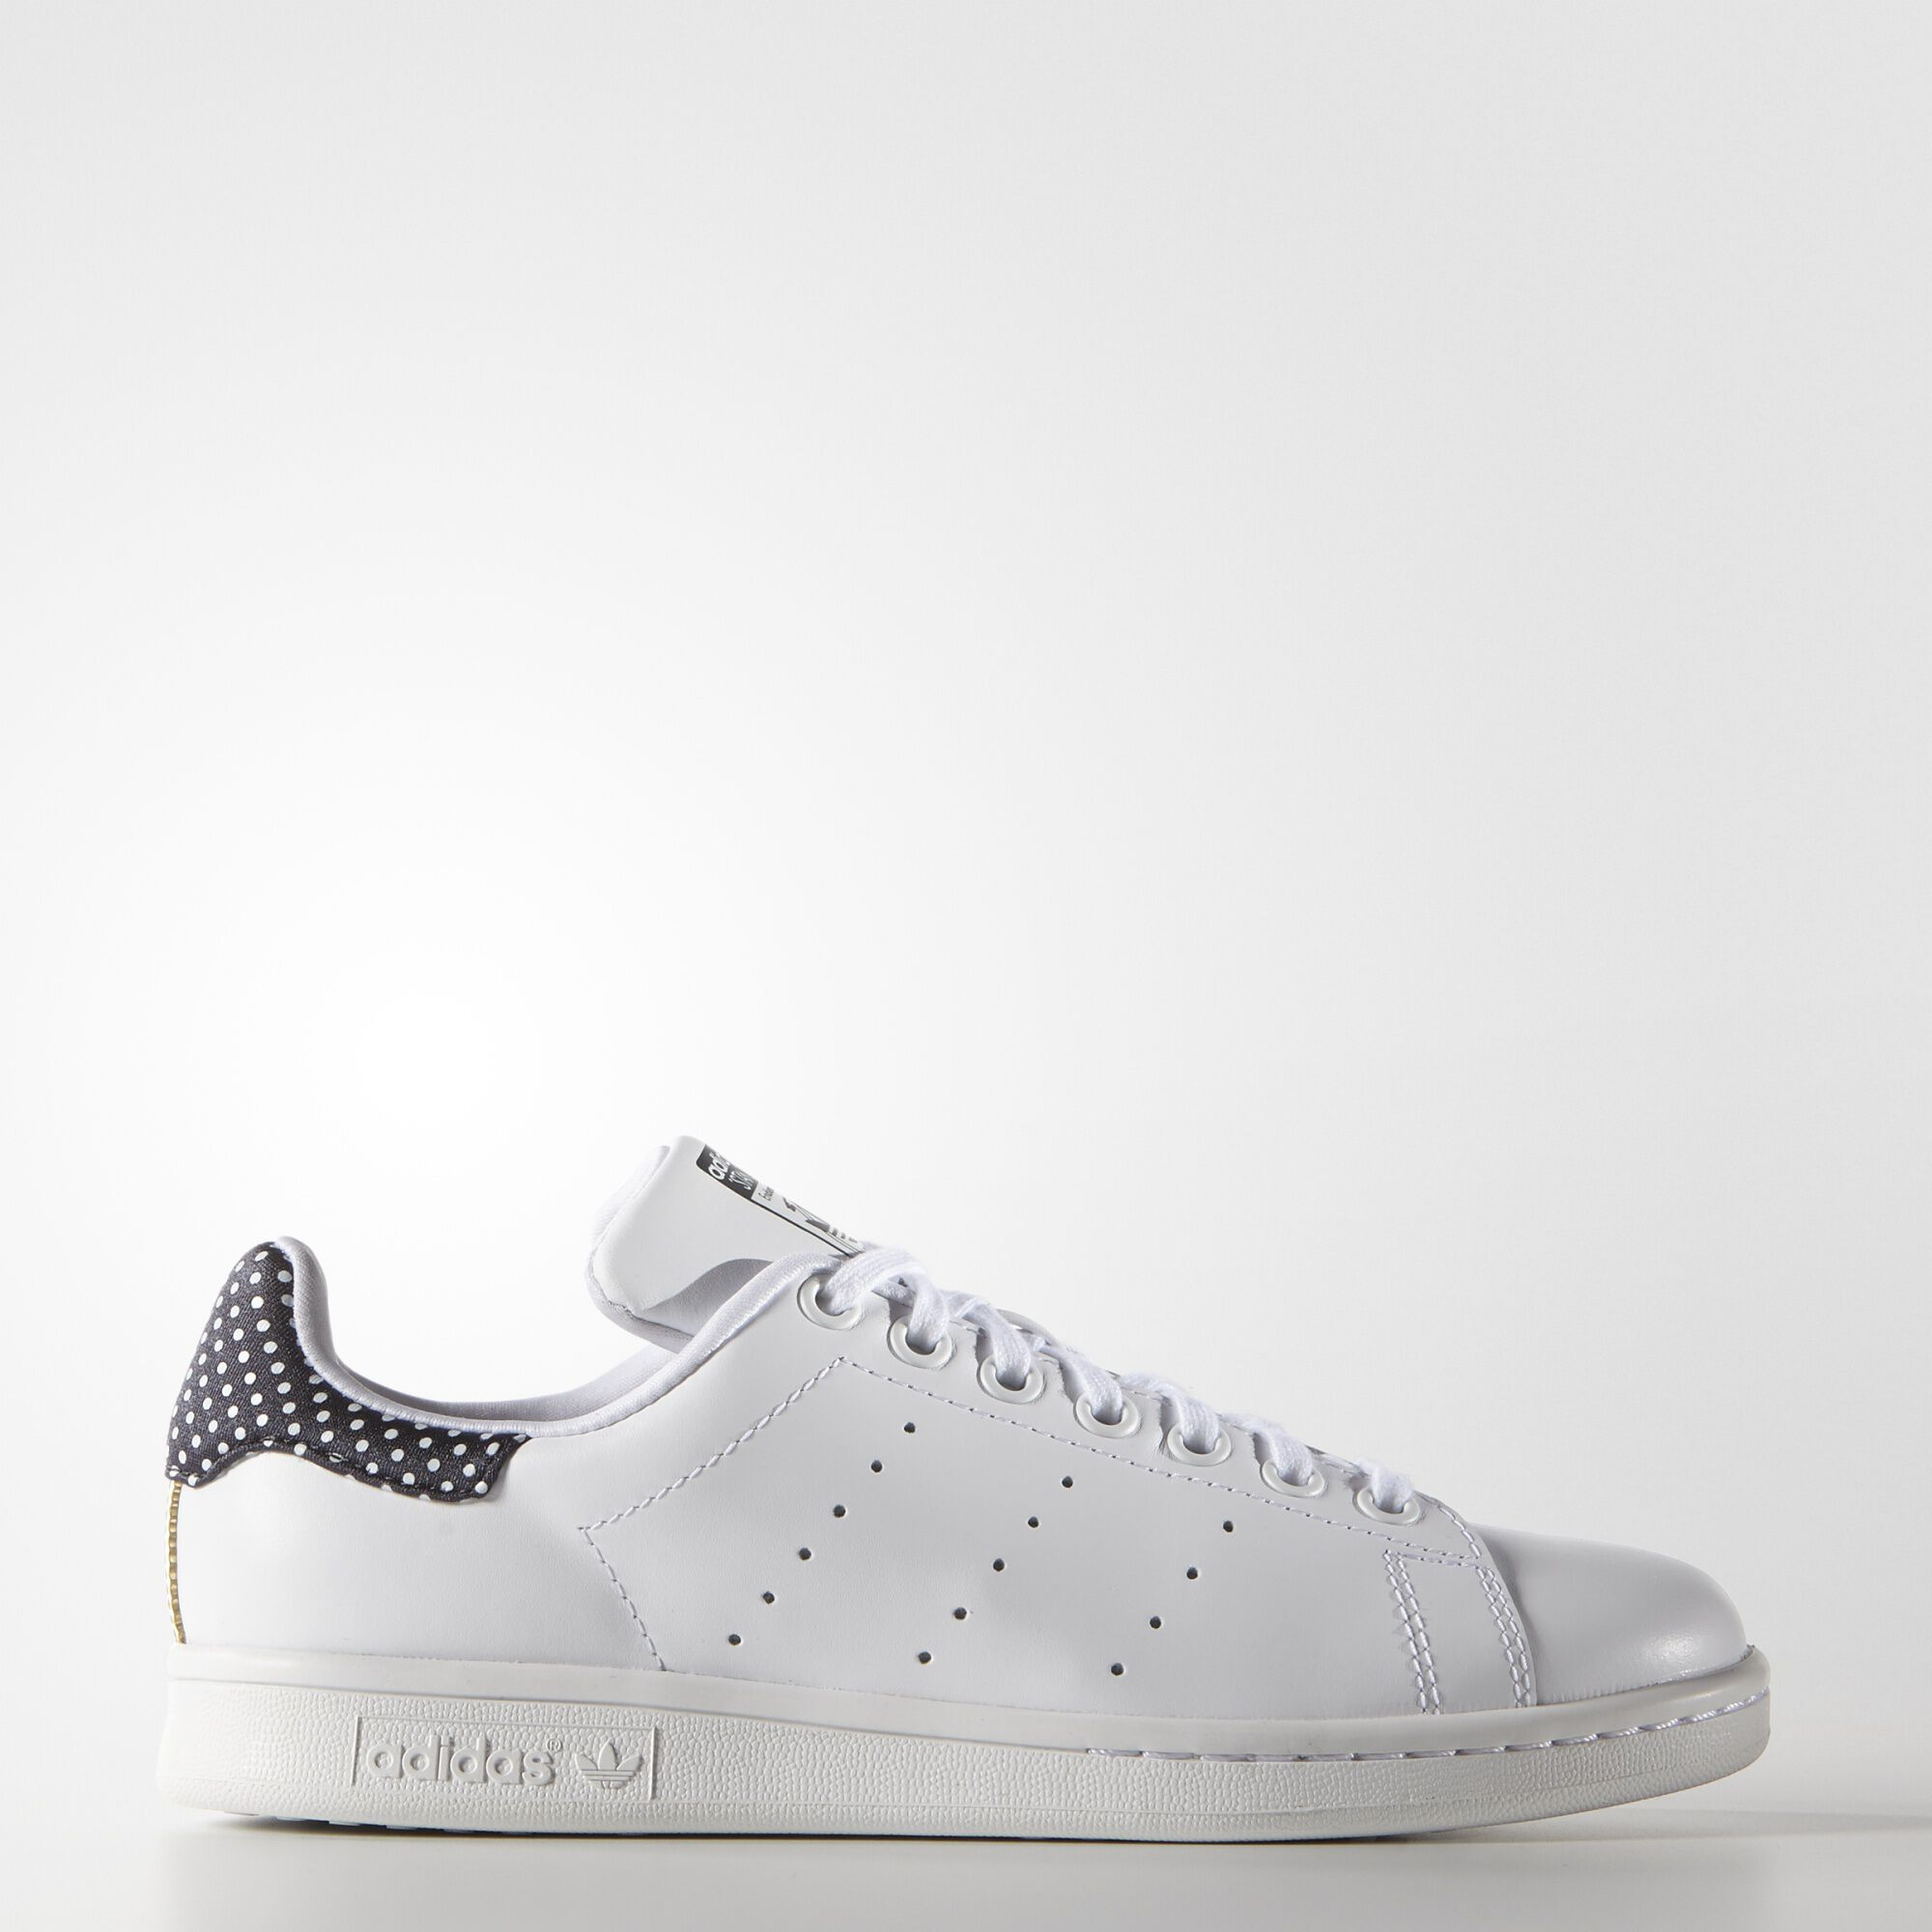 Stan Smith Rita Ora Adidas